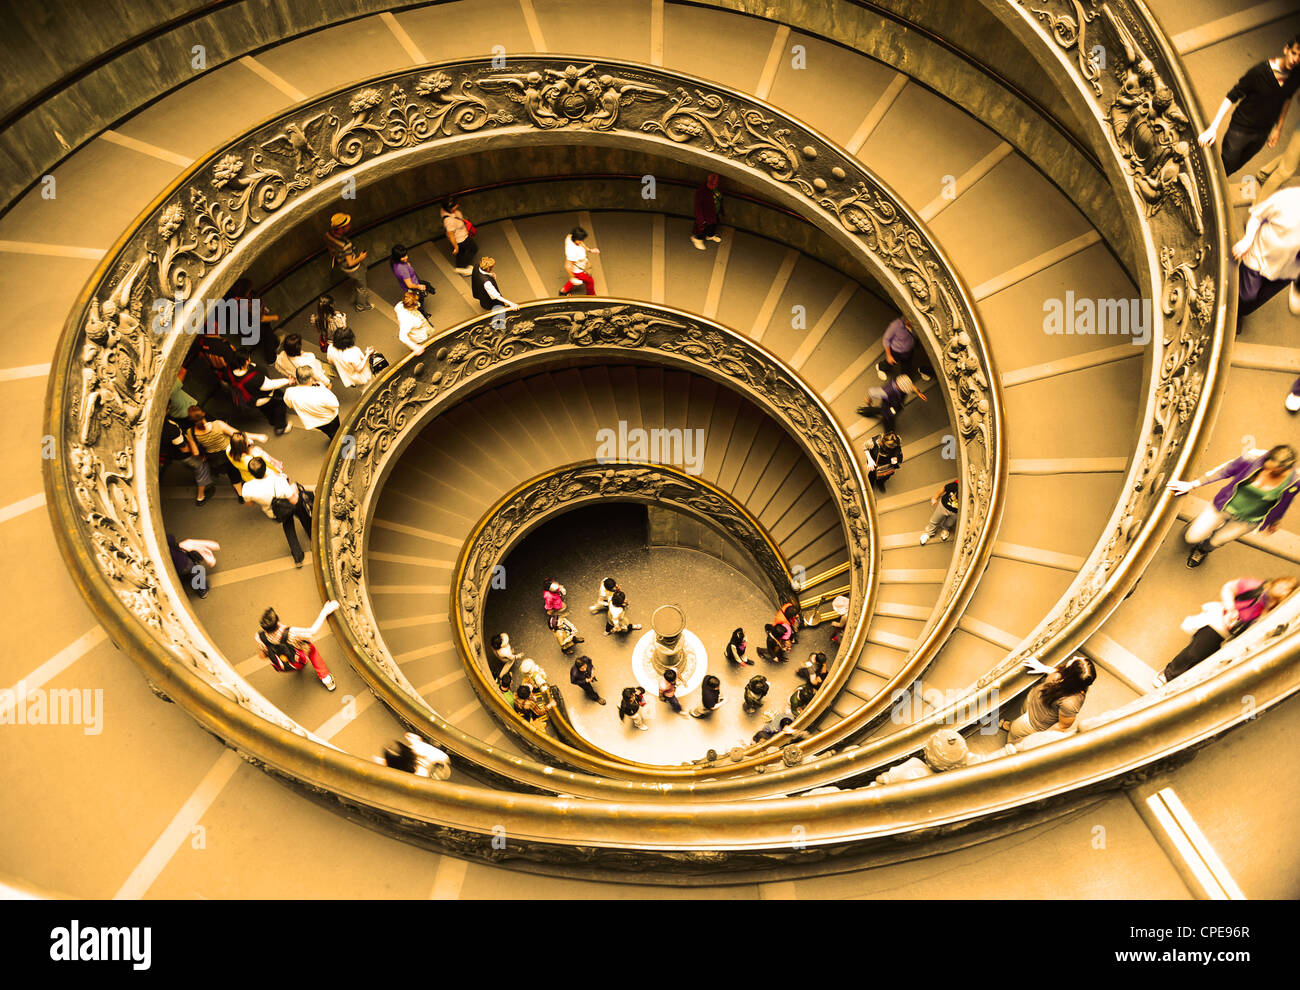 Spiral staircase at the exit in the Vatican Museums, close to St Peter's Basilica, Vatican City, Rome, Italy. Stock Photo